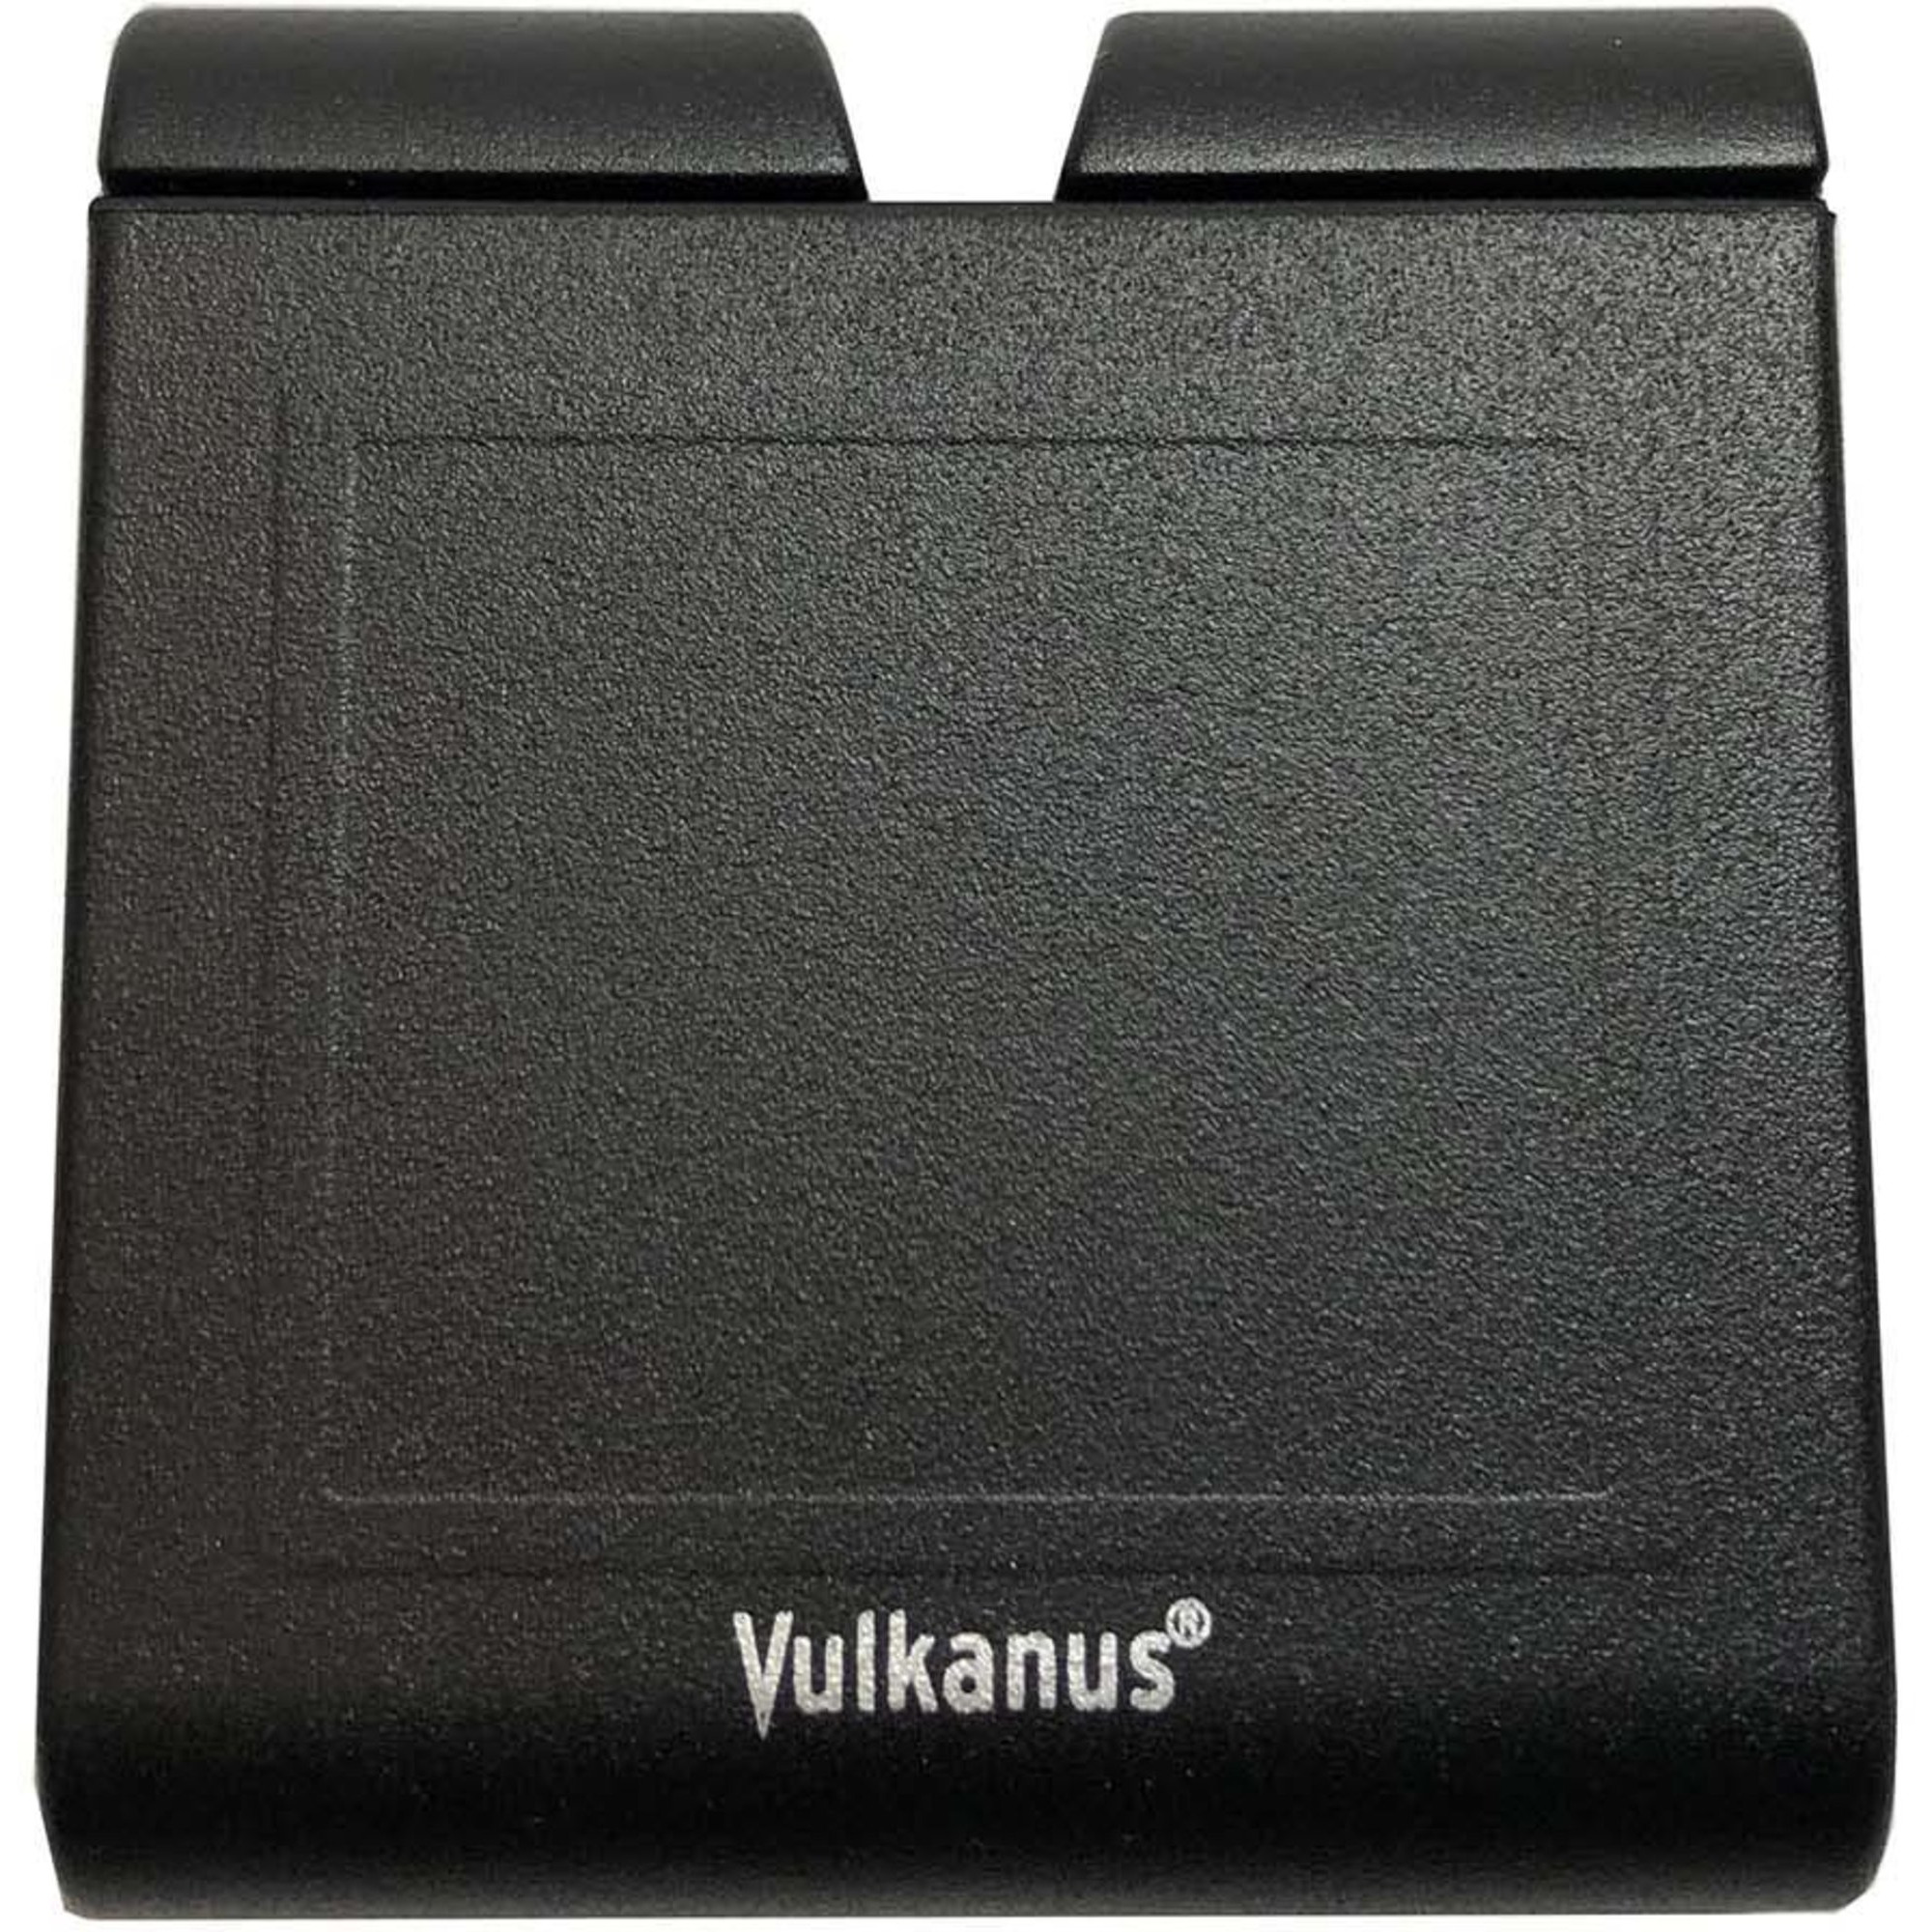 Vulkanus Pocket Basic Knivslip